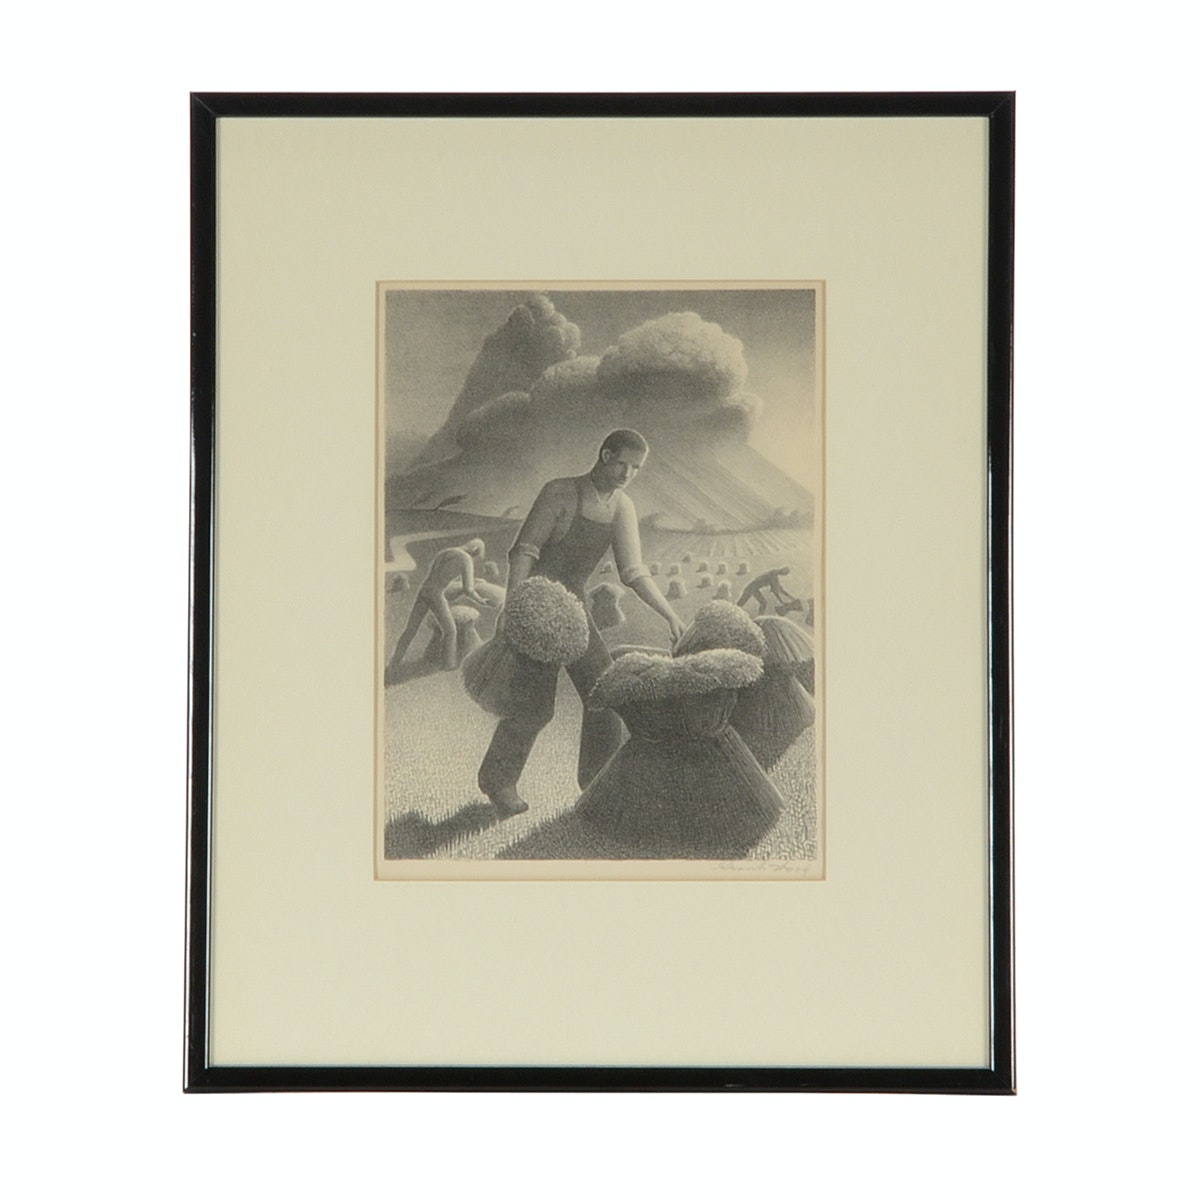 Grant Wood Signed Stone Lithograph Quot Approaching Storm Quot Ebth